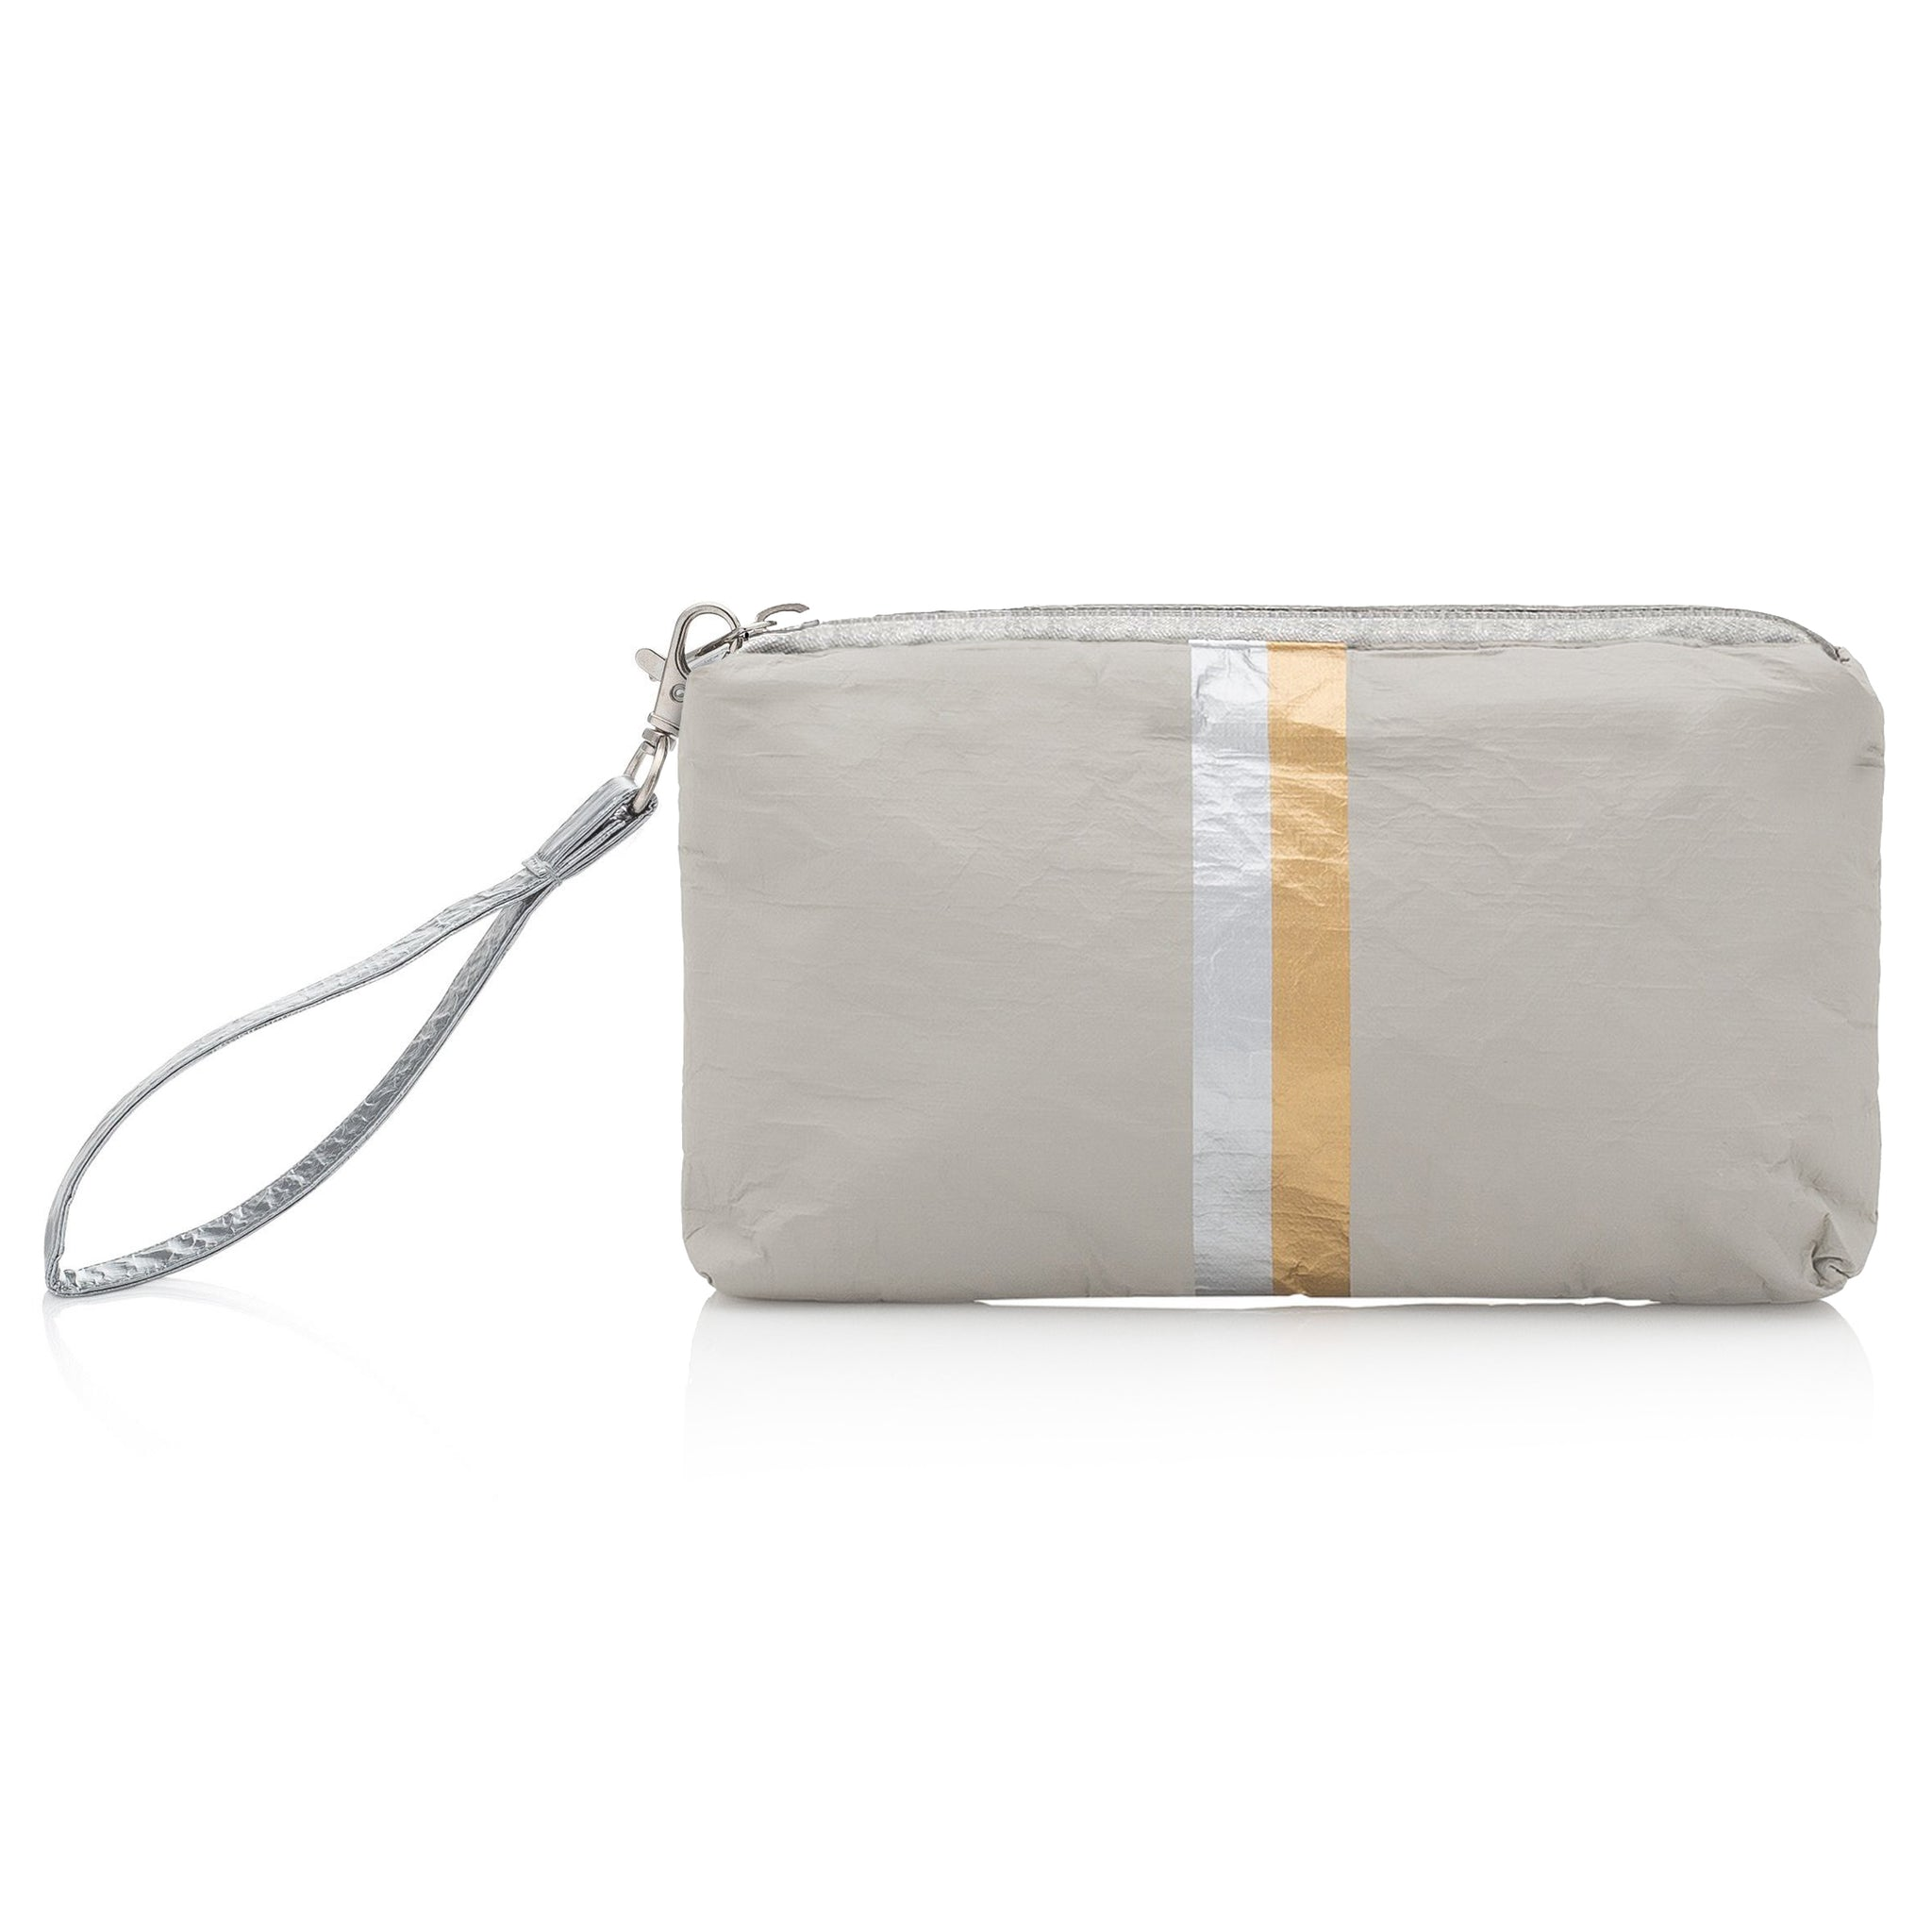 Wristlet - Earth Gray with Silver and Gold Stripes